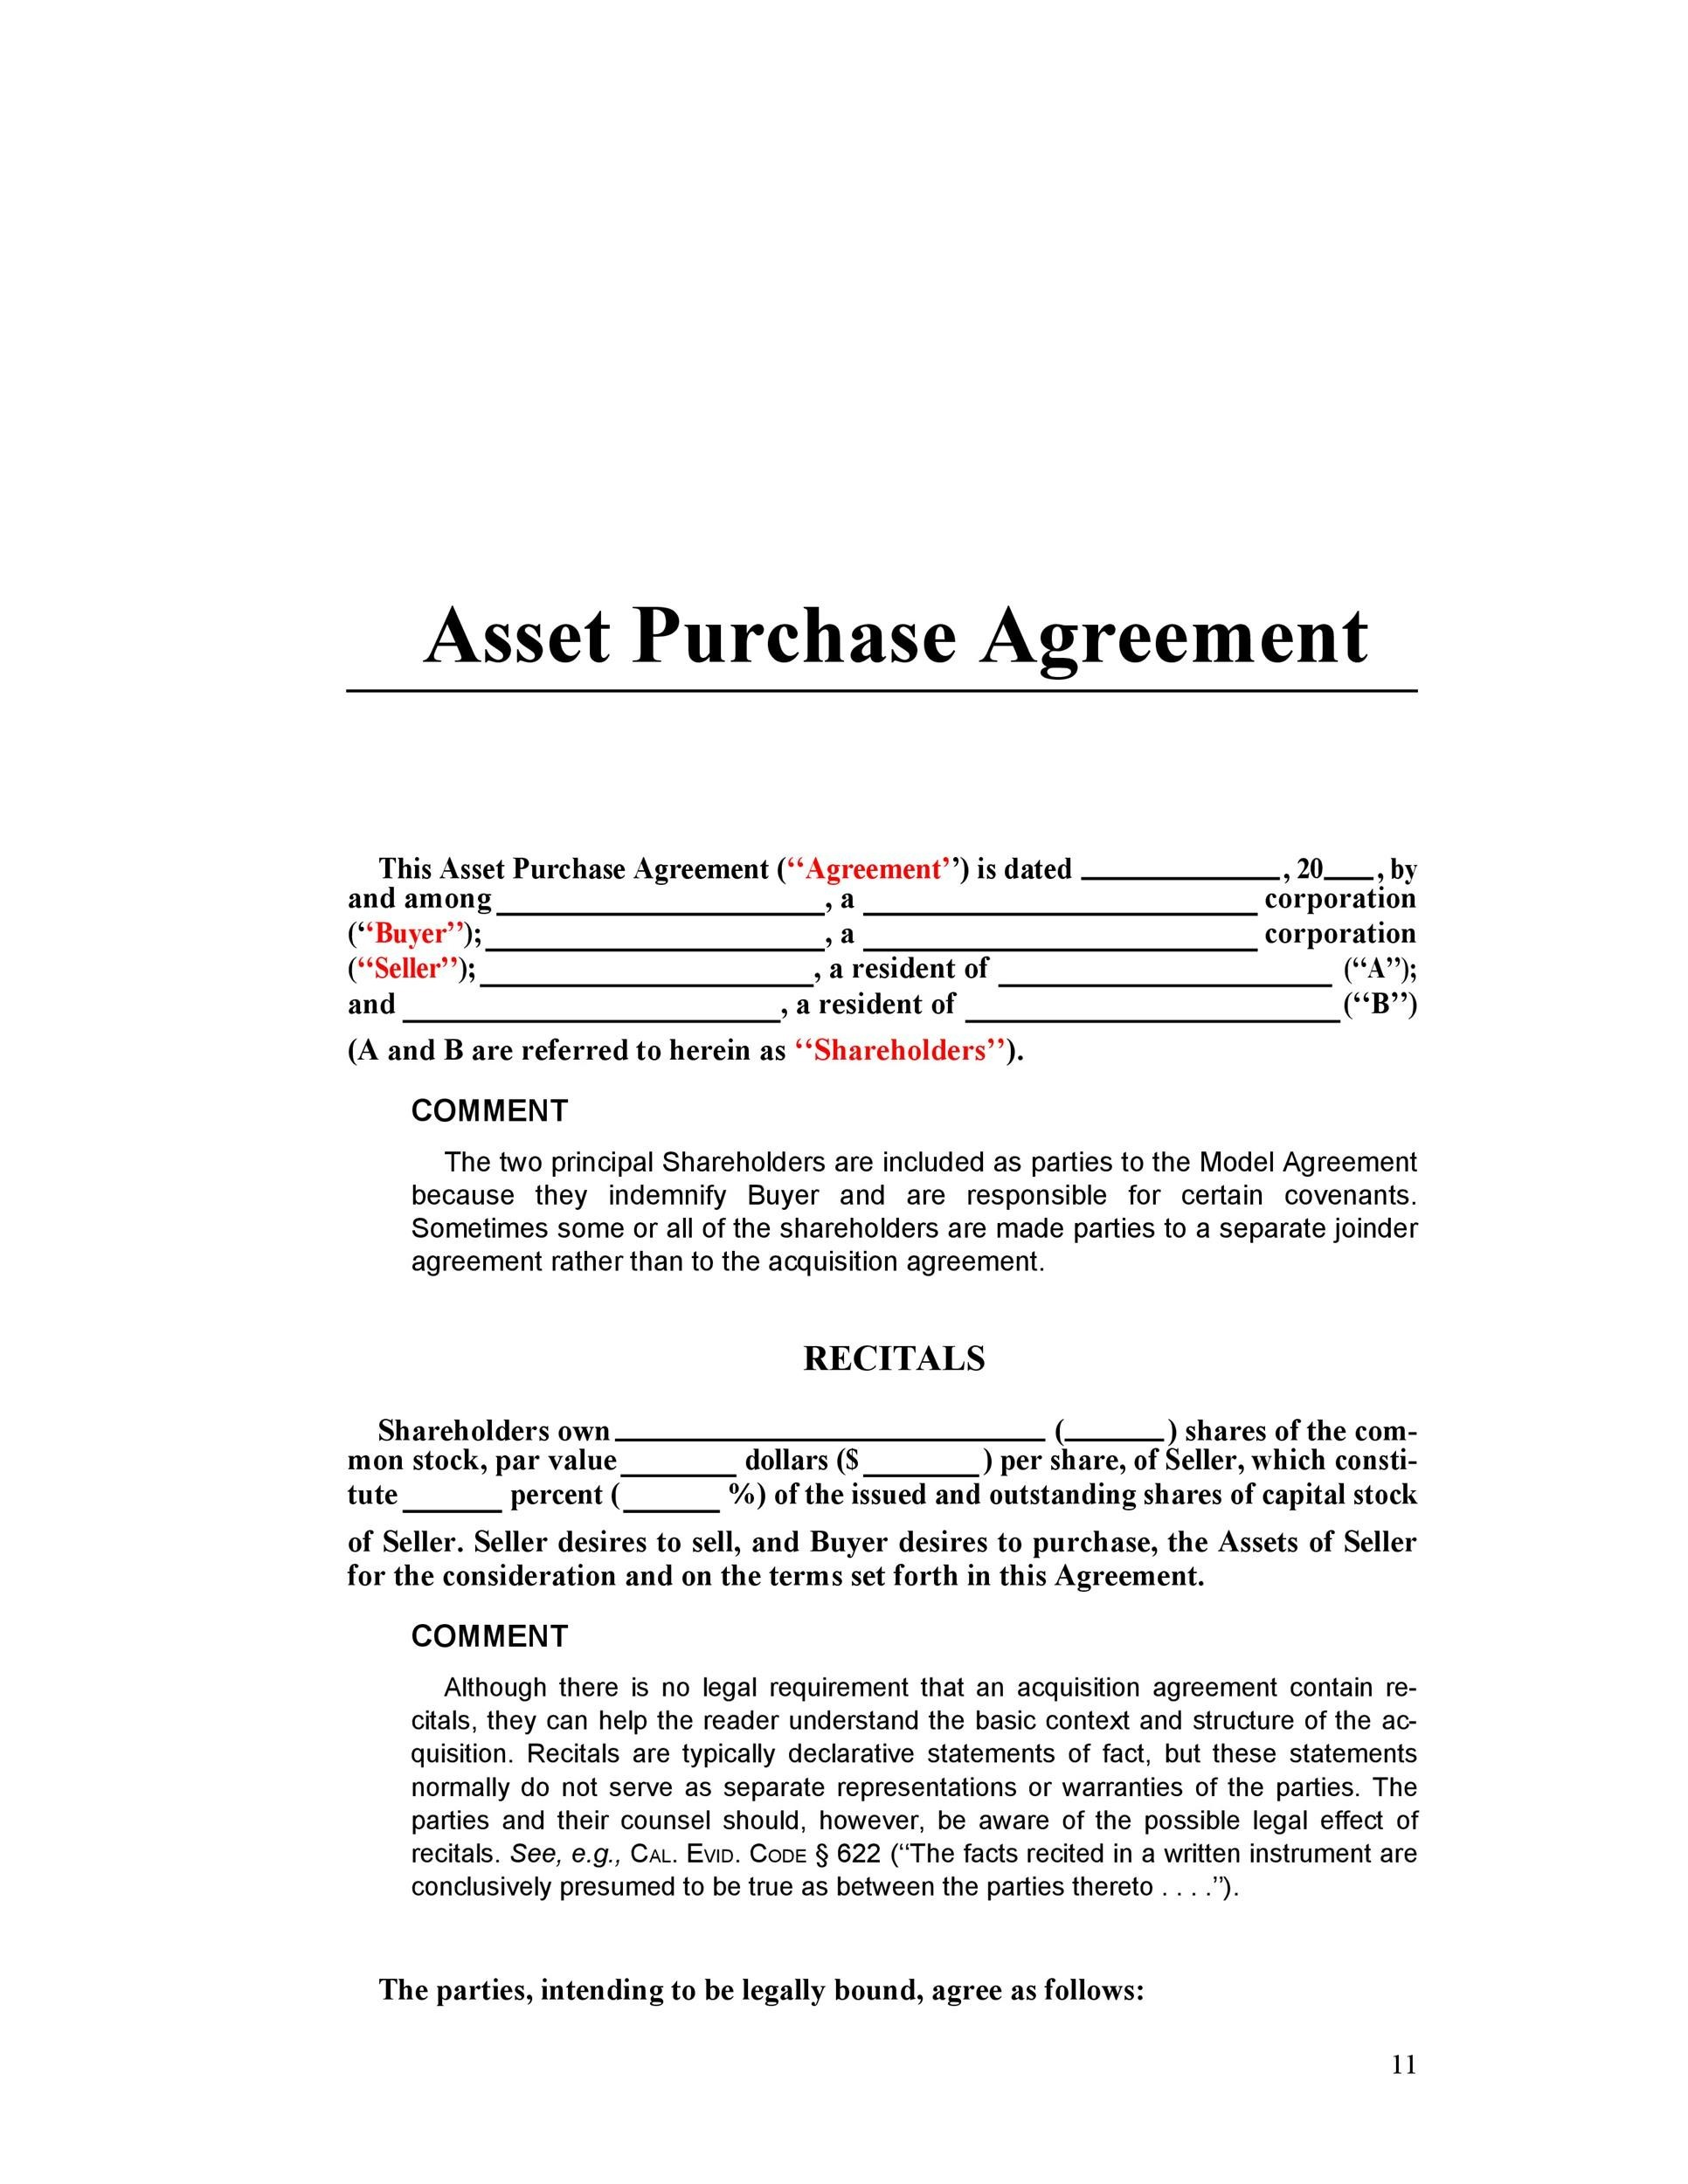 Sample asset purchase agreement purchase agreement template 12 37 simple purchase agreement templates real estate business pronofoot35fo Choice Image